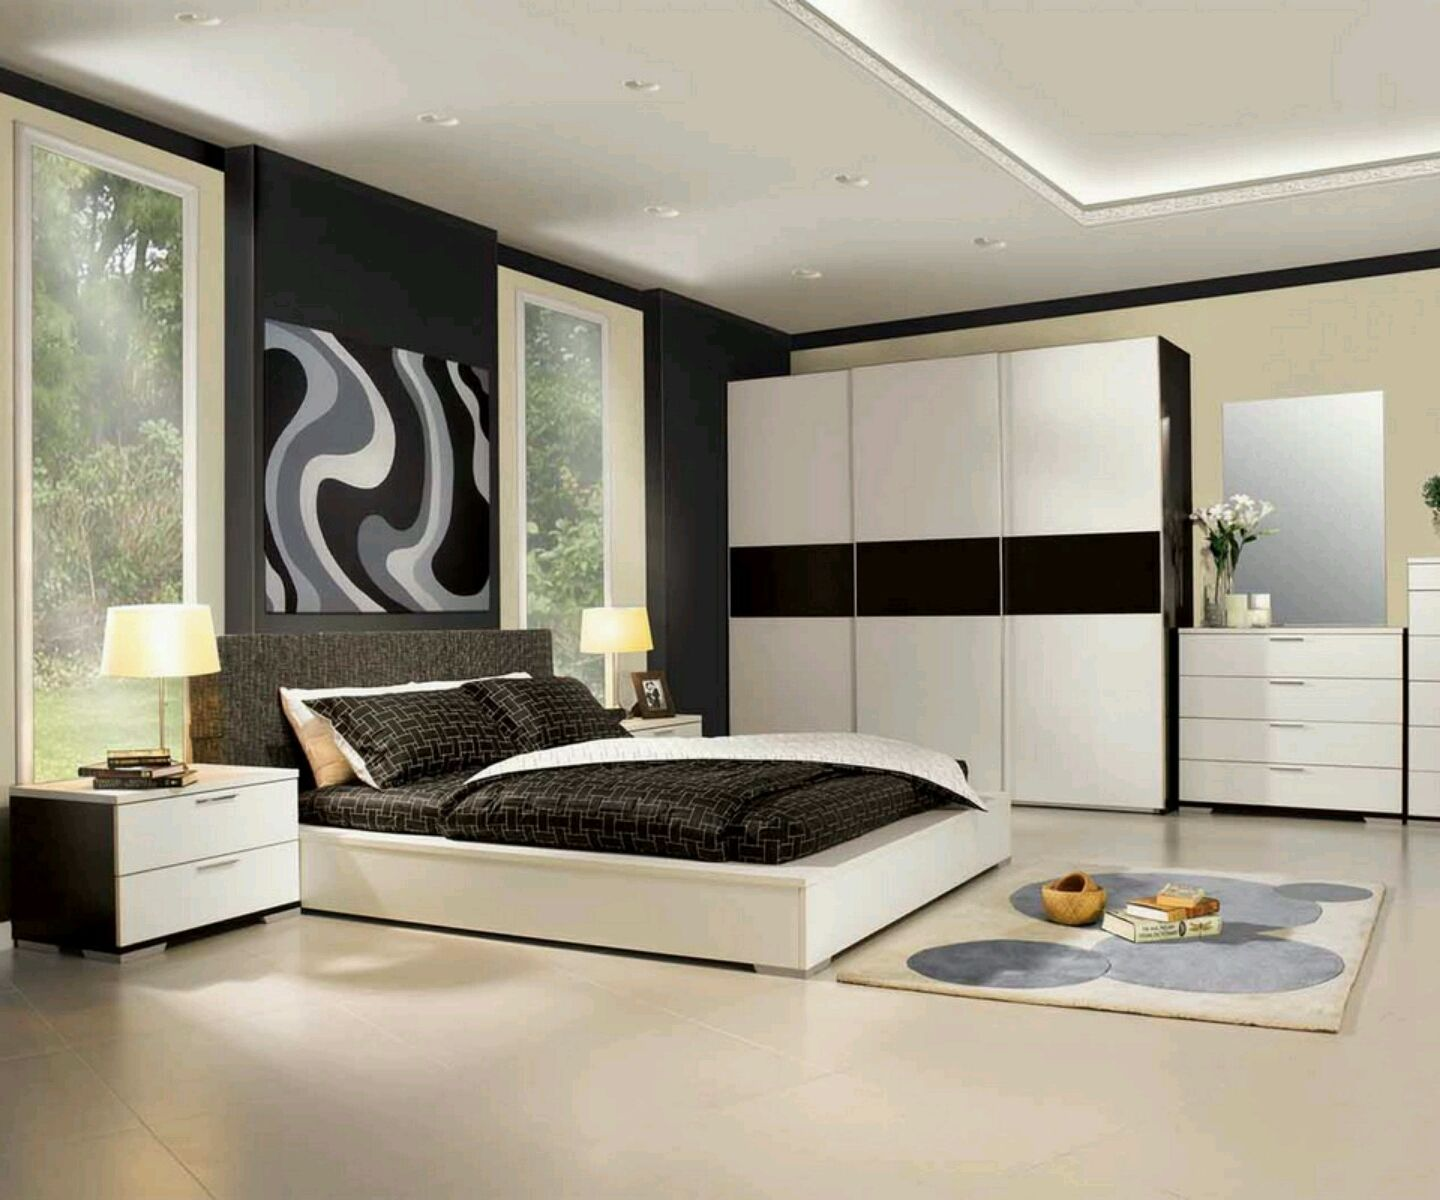 Bedroom Furniture Design. Modern Bedroom Furniture Design For More Pictures  And Ideas, Please Visit